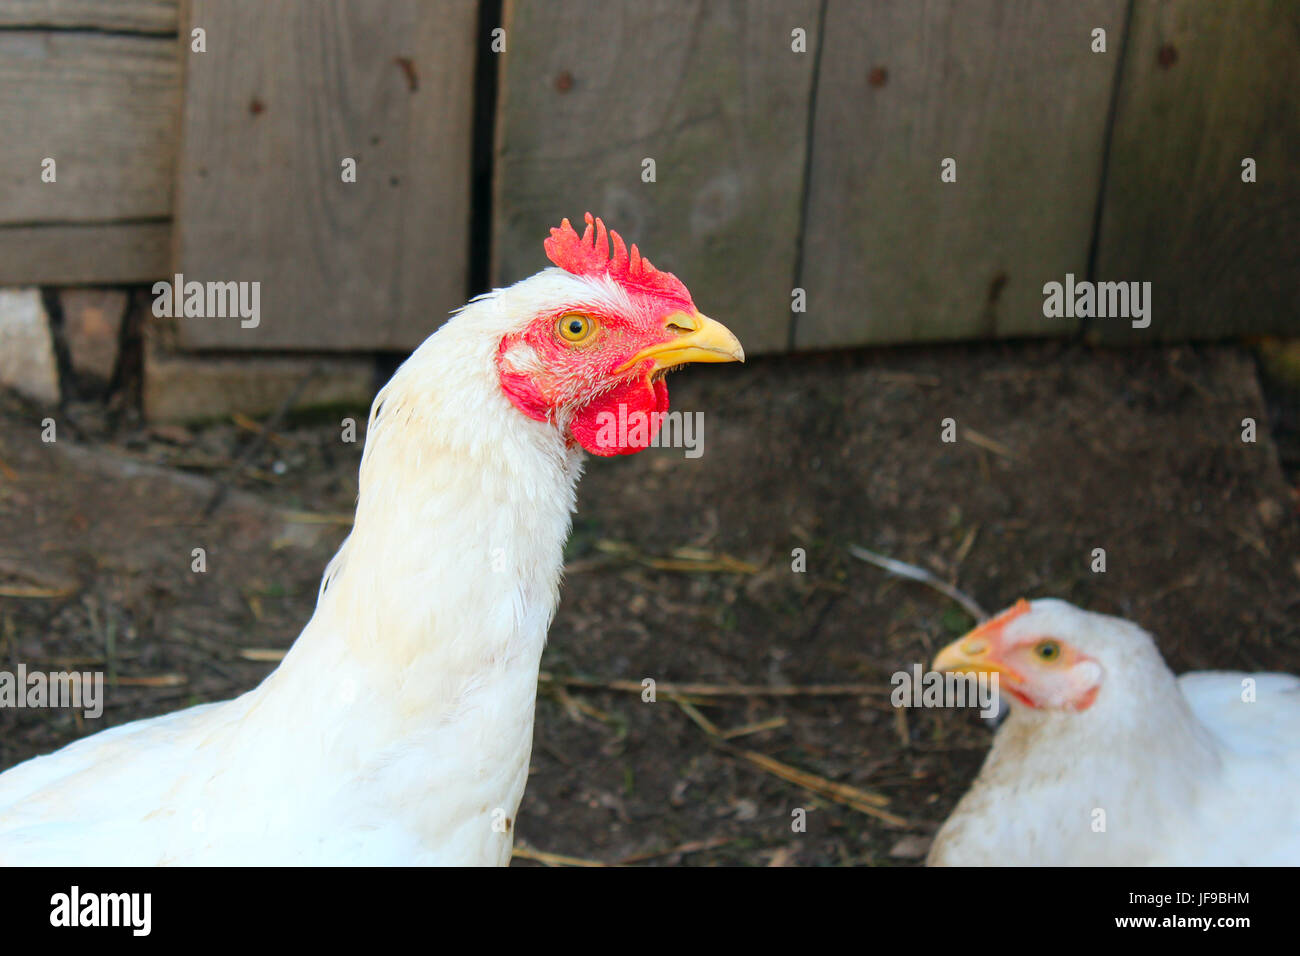 Hens in the poultry-yard - Stock Image